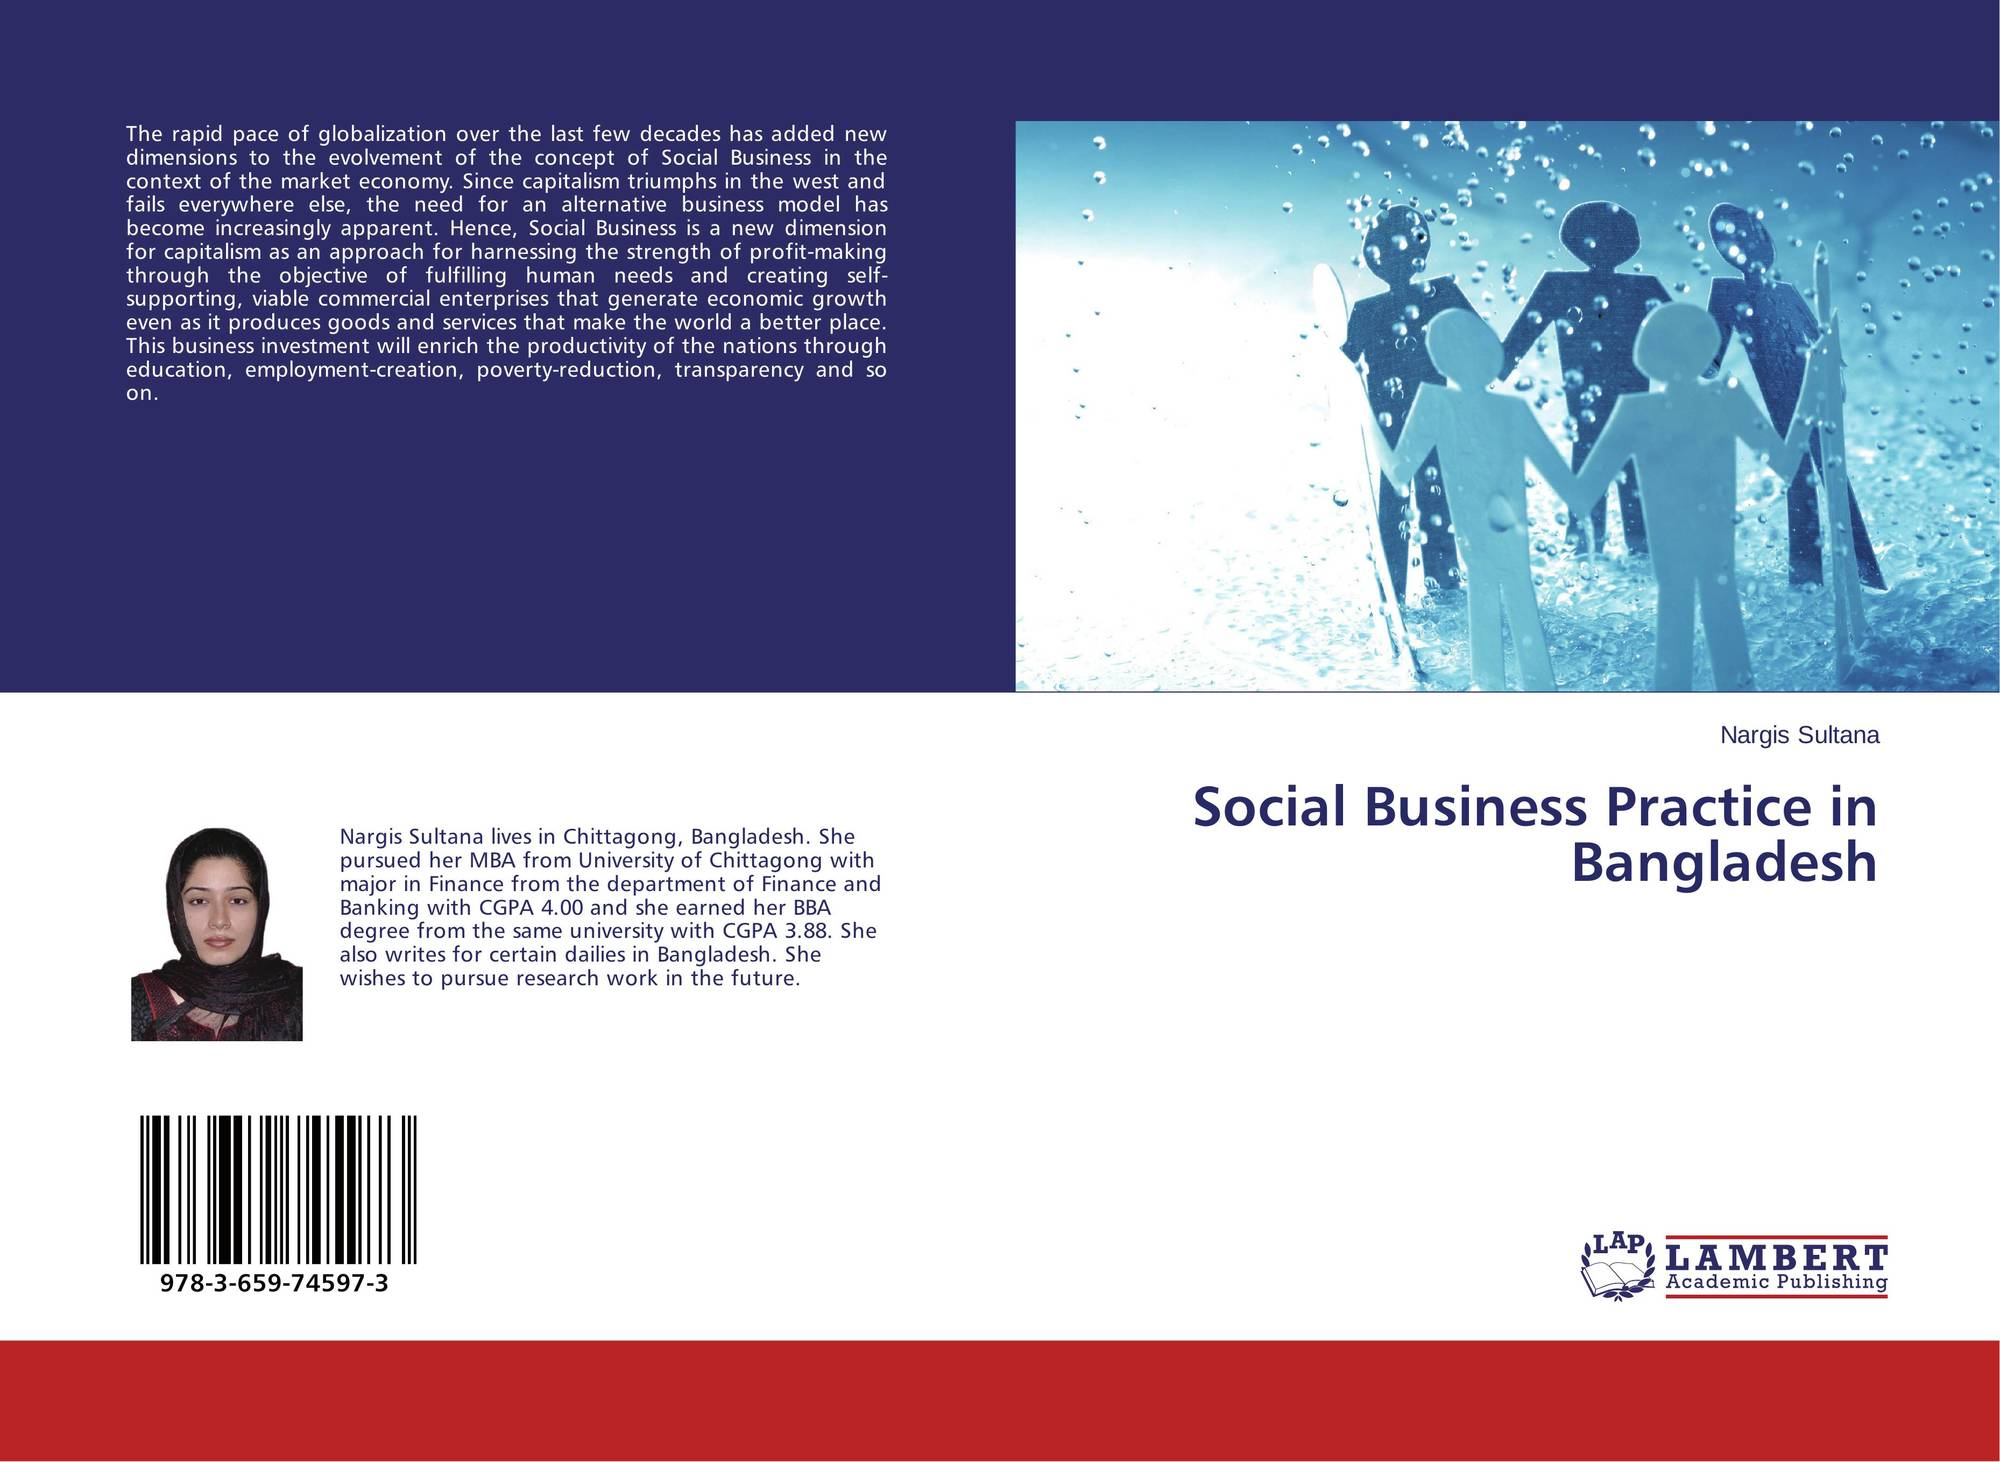 social business in bangladesh If you intend to come into bangladesh as a social entrepreneur, then you may be coming into a safer environment because the country has a vibrant social enterprise sector and it is noted as one of the most efficient production/manufacturing hub in the world.